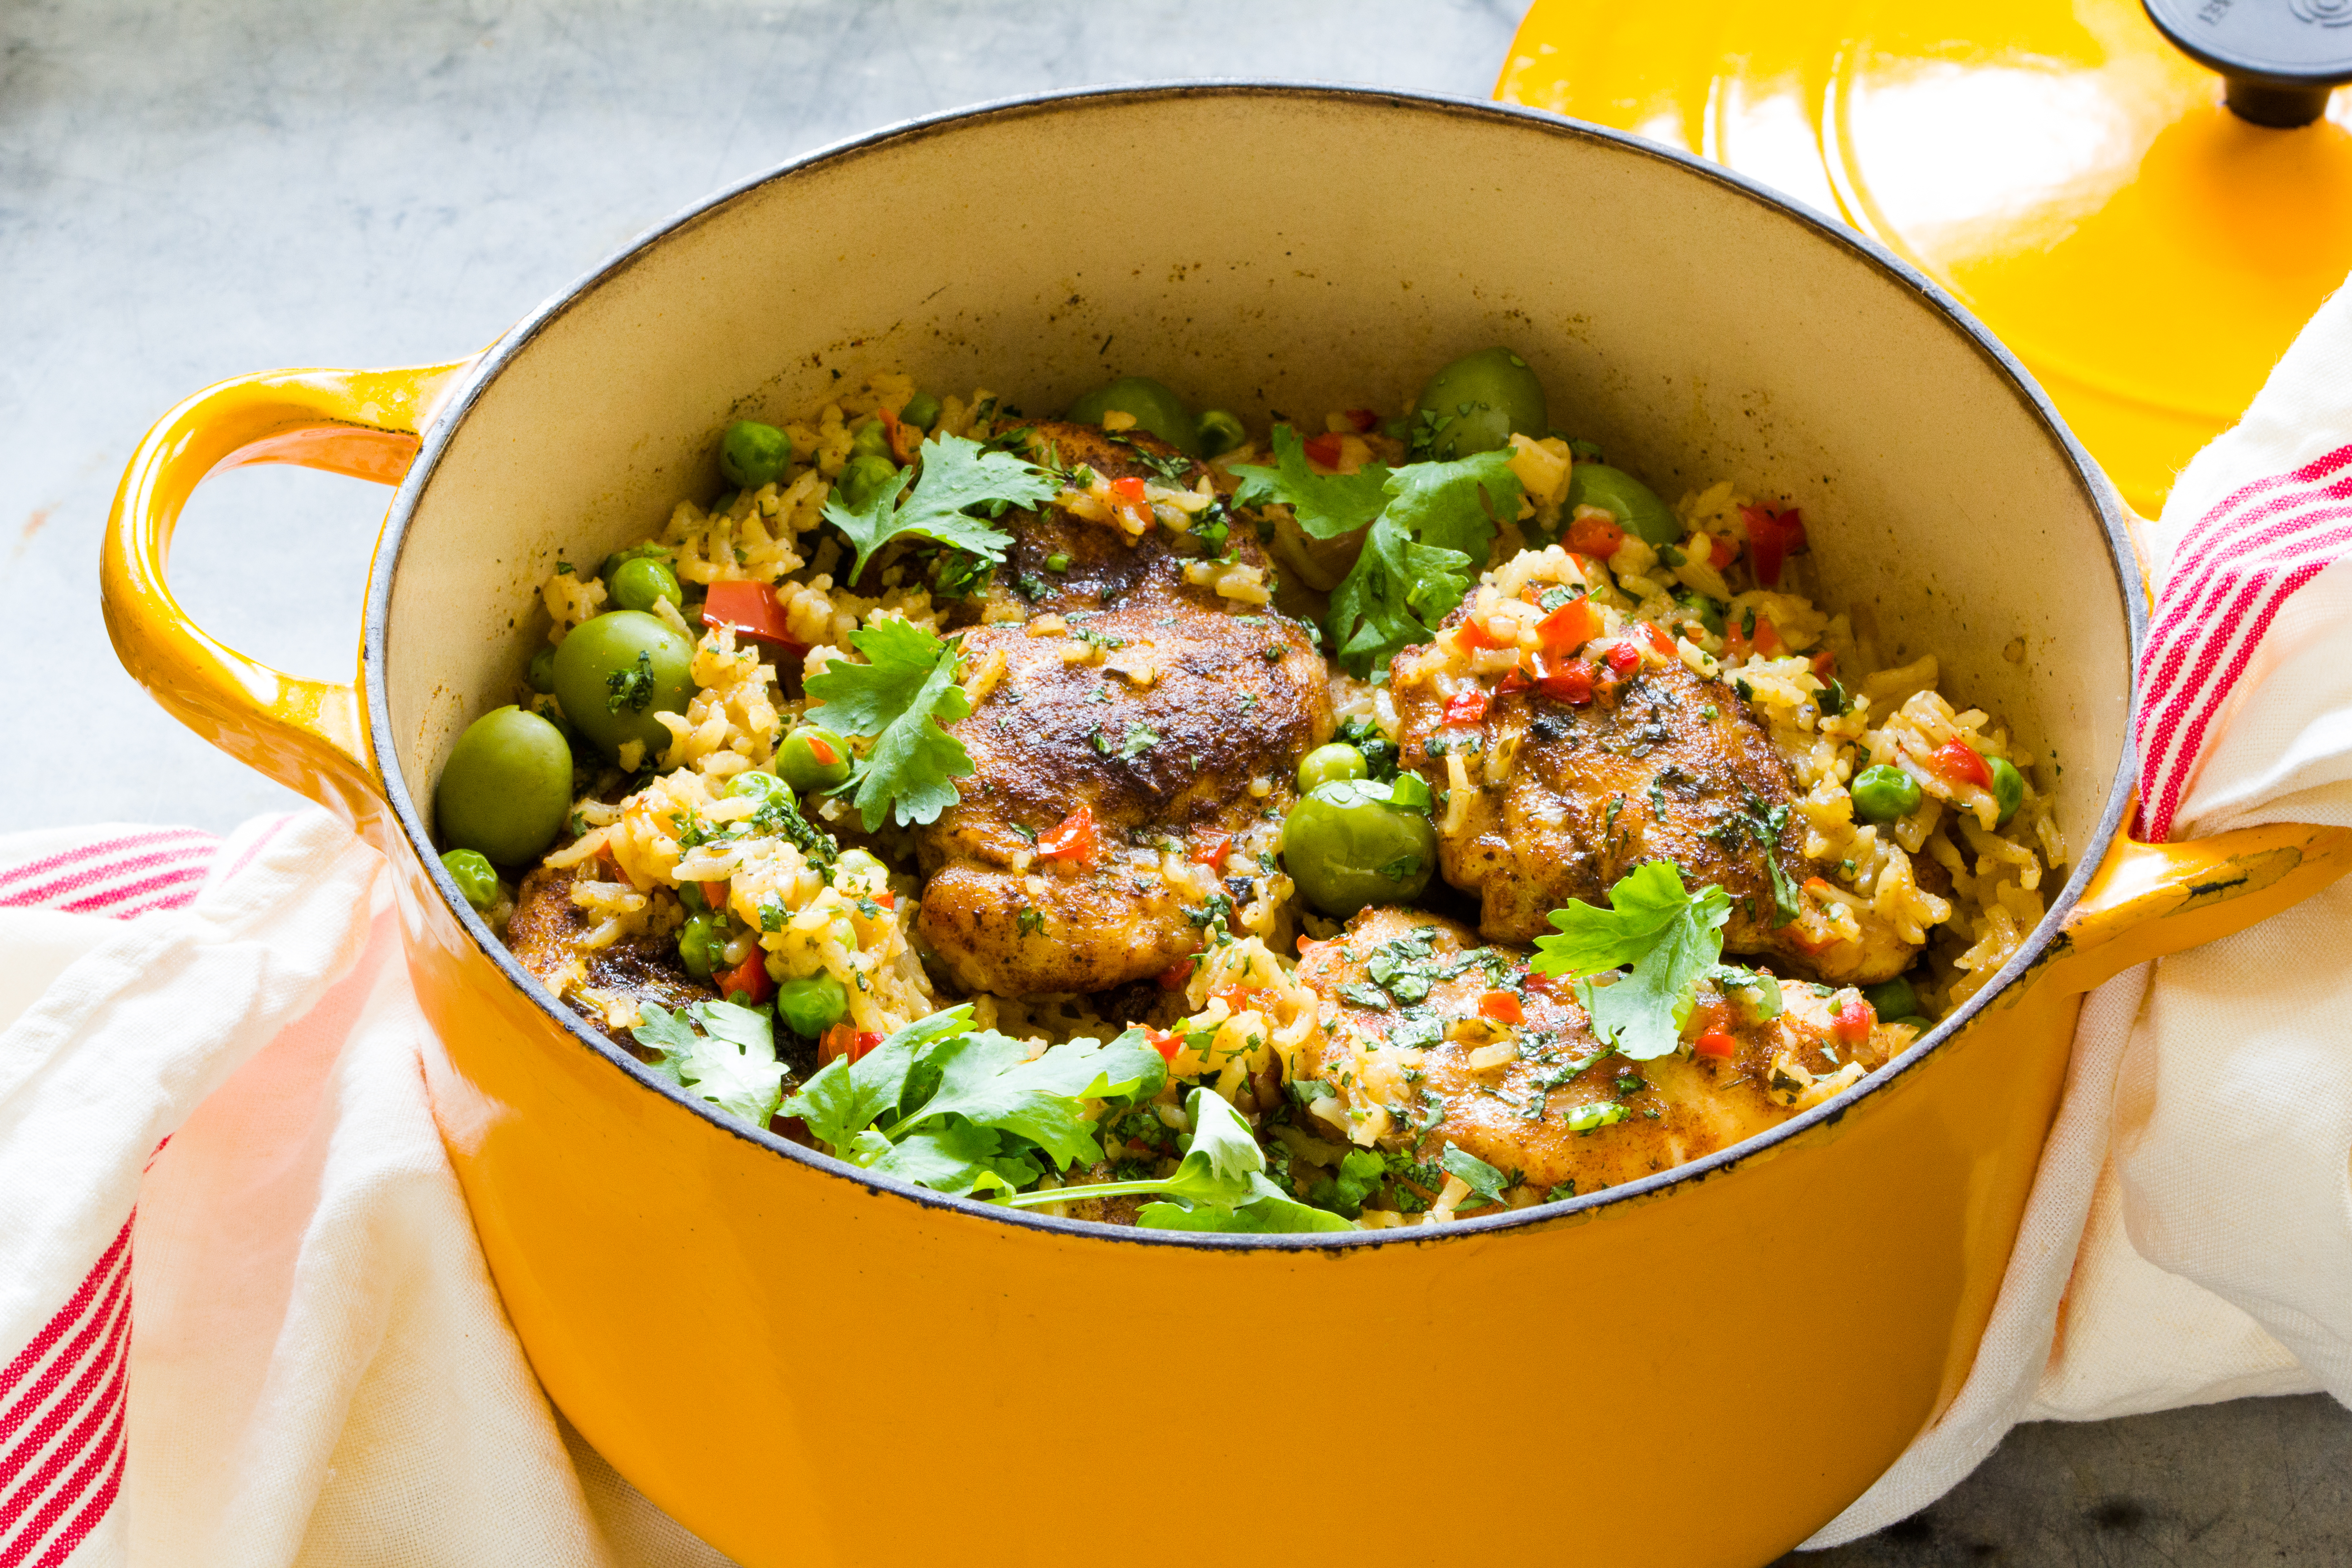 Recipe: A pot of Spanish chicken and rice is brimming with good flavors